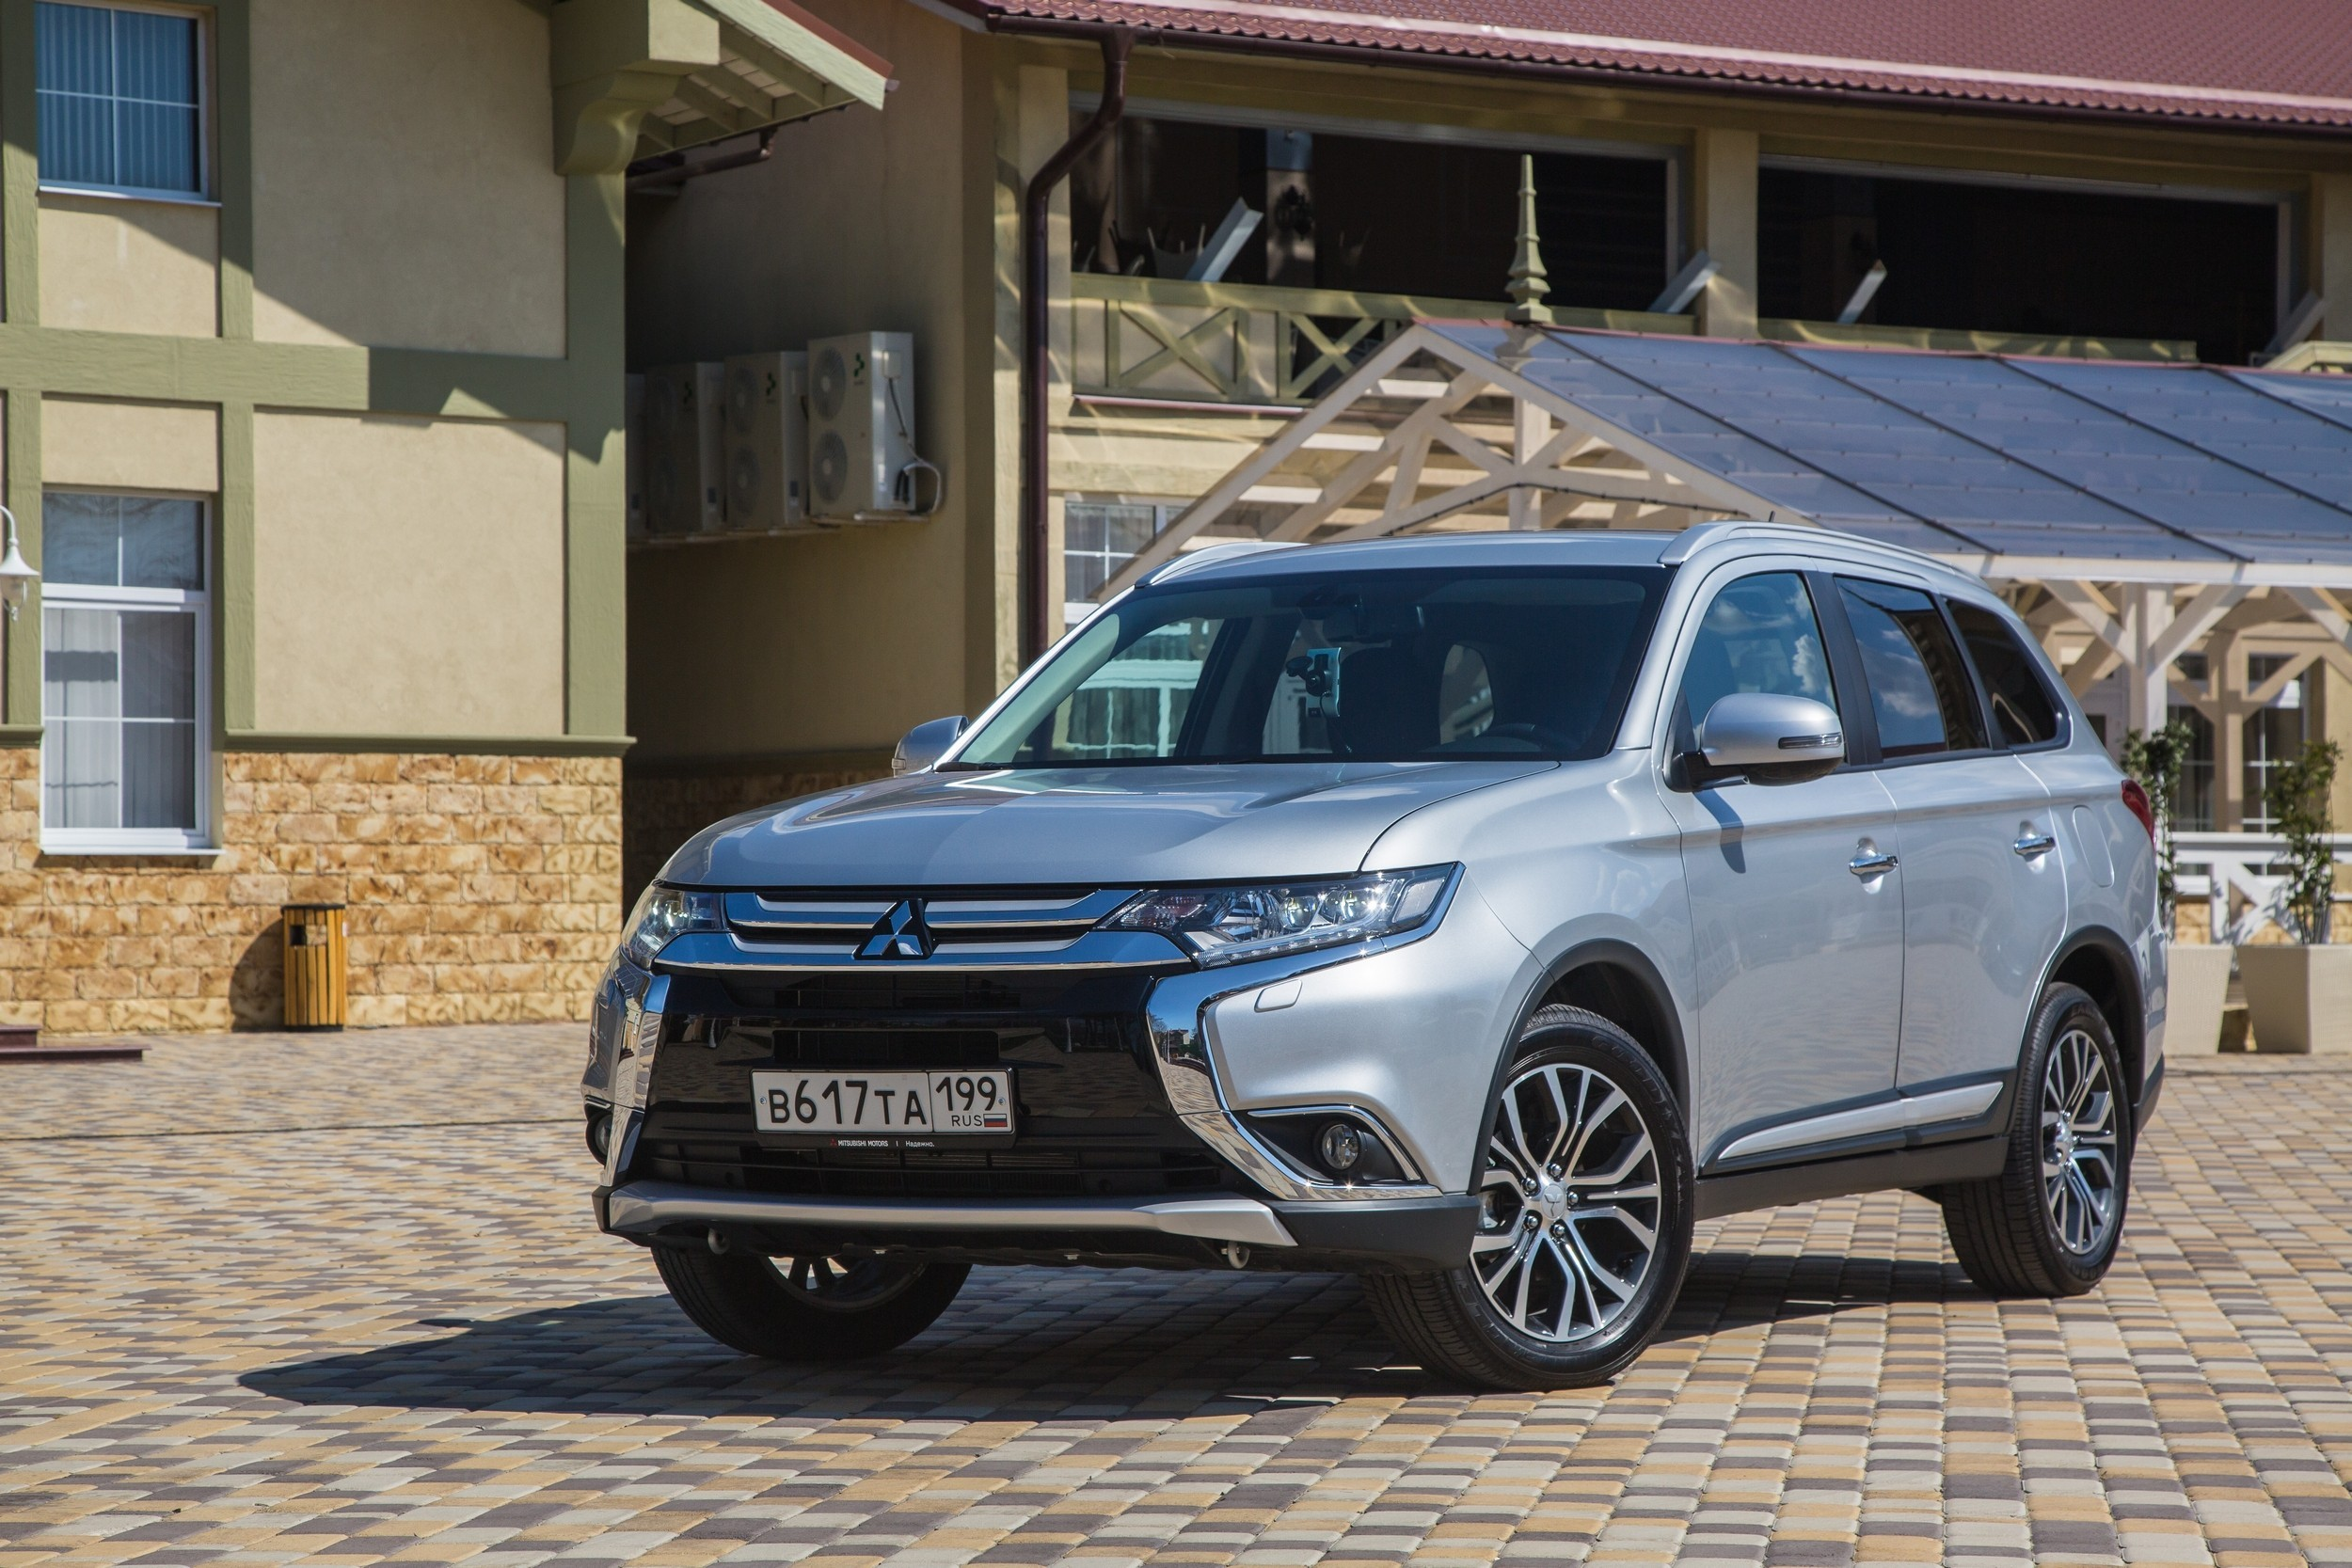 Mitsubishi_Outlander_MY2016_Car_008